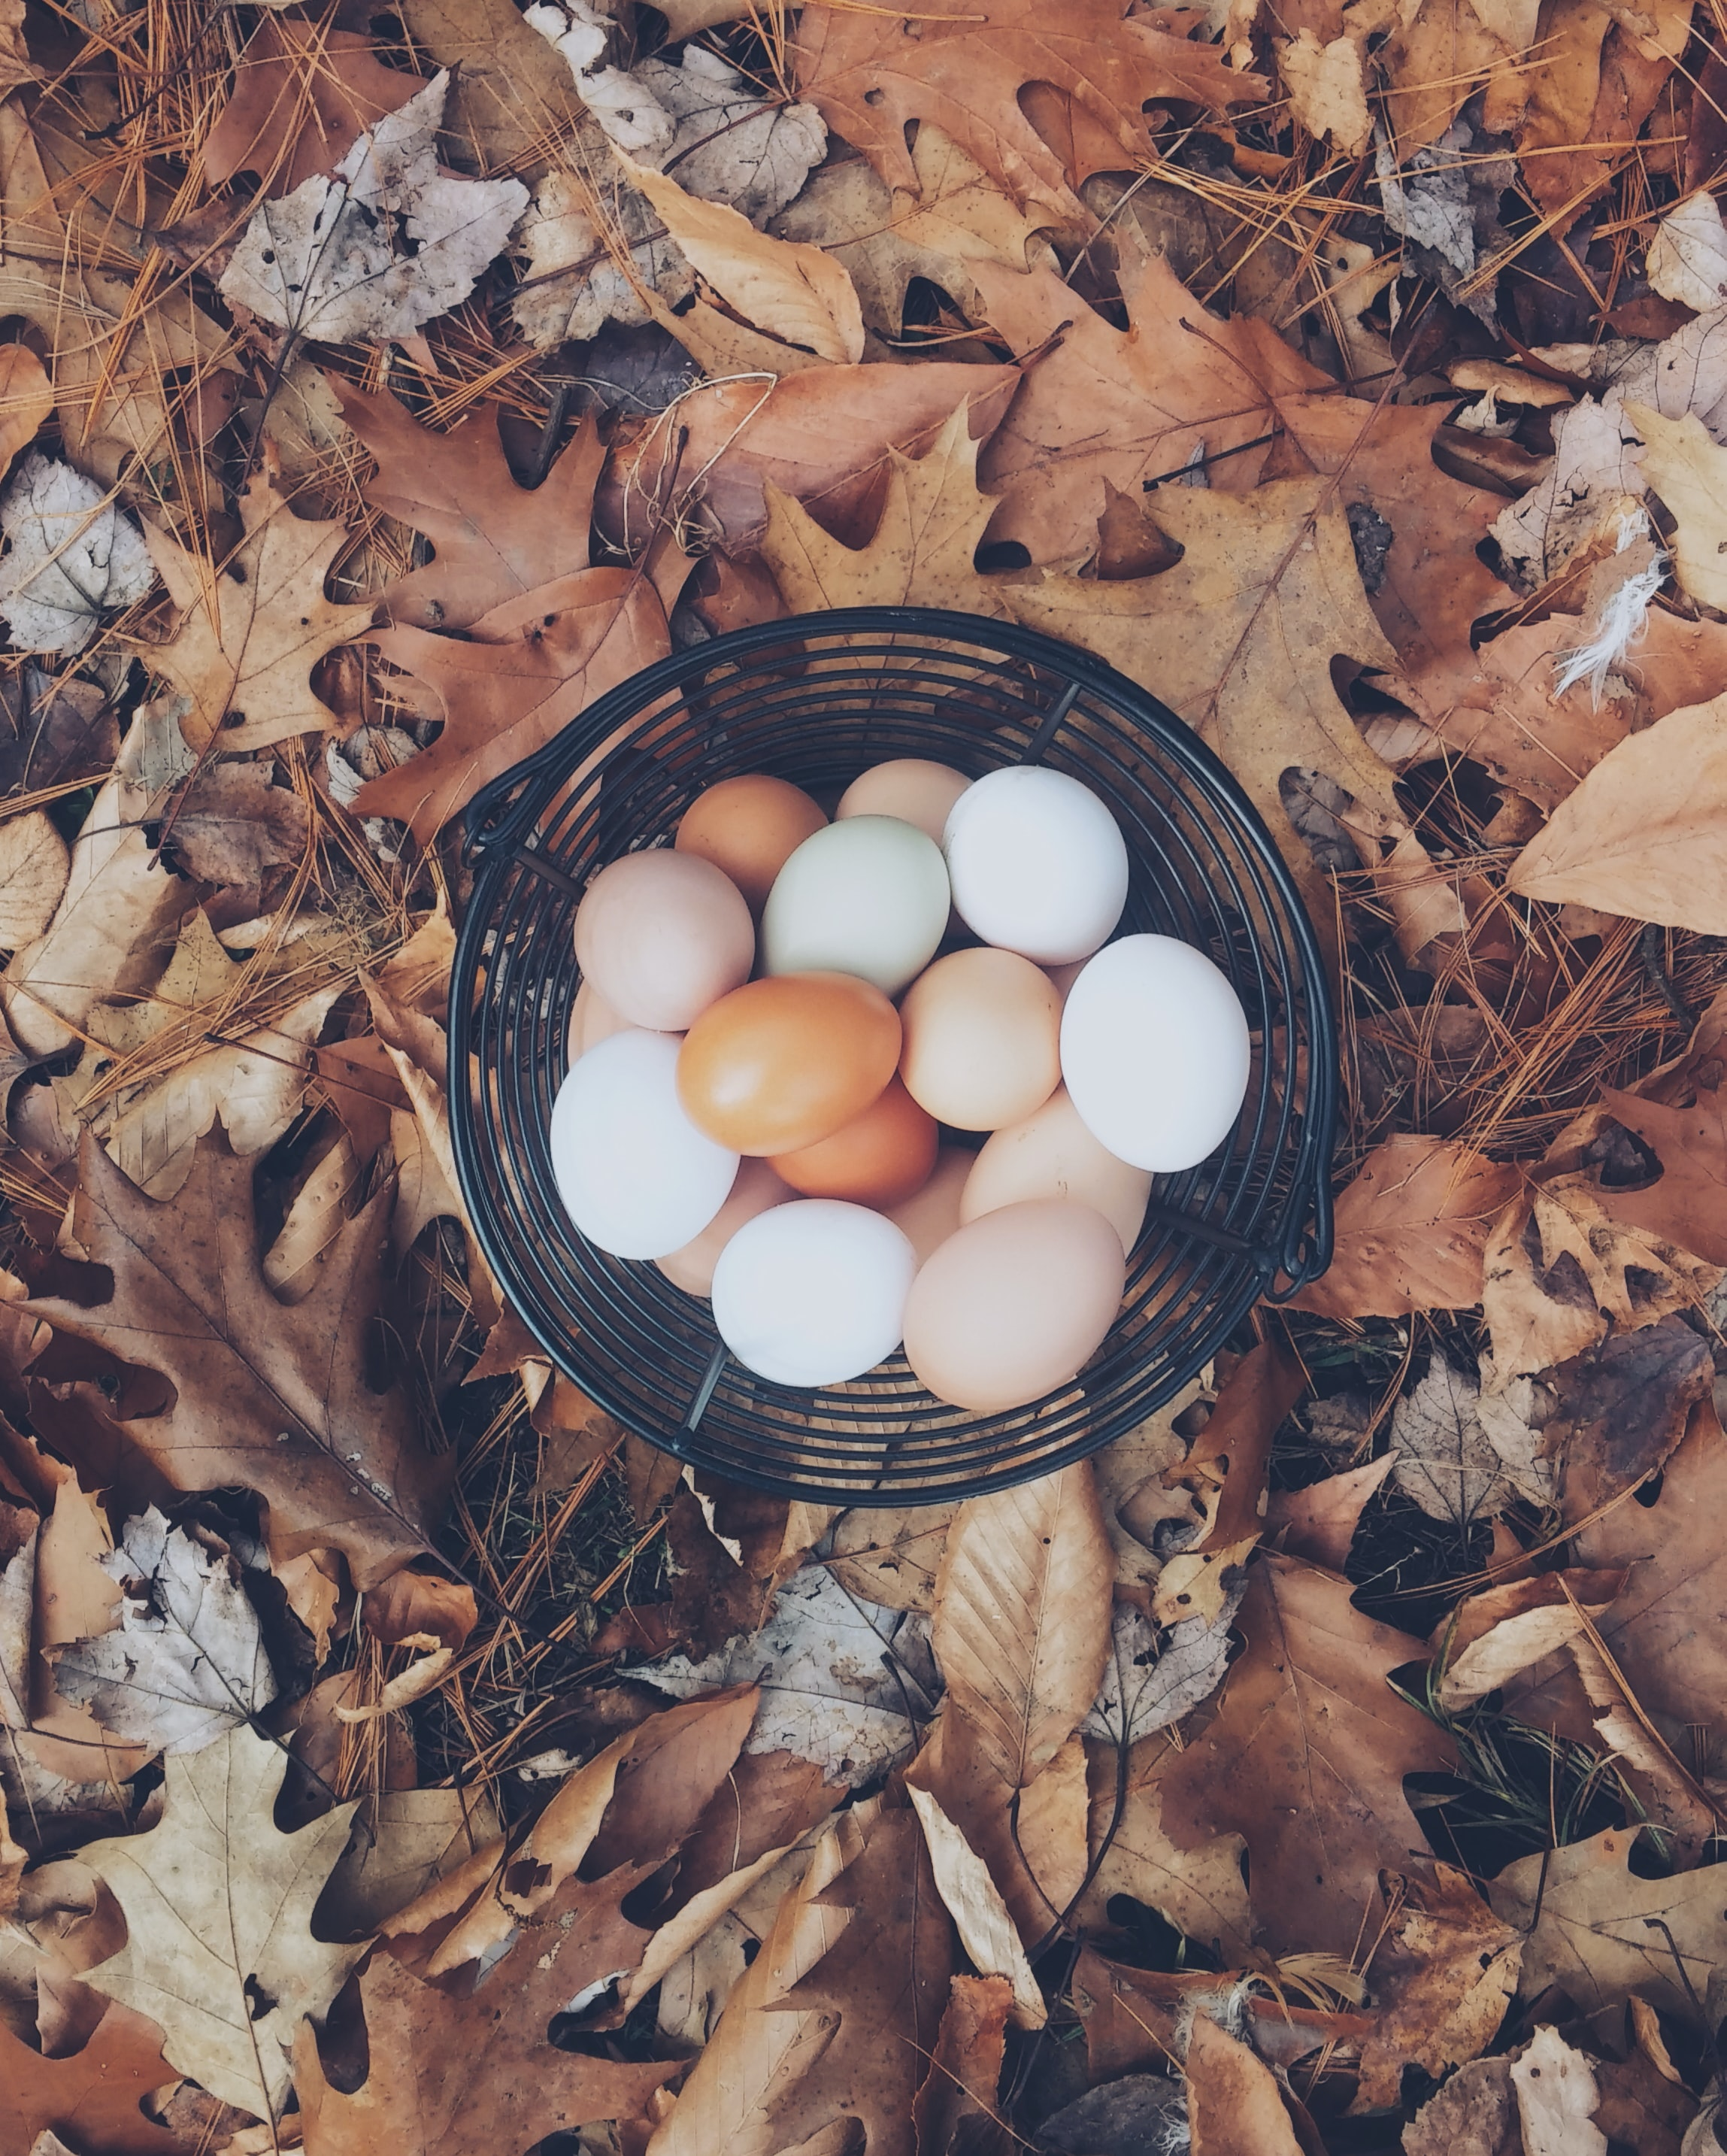 Basket of fresh chicken eggs atop fallen autumn leaves